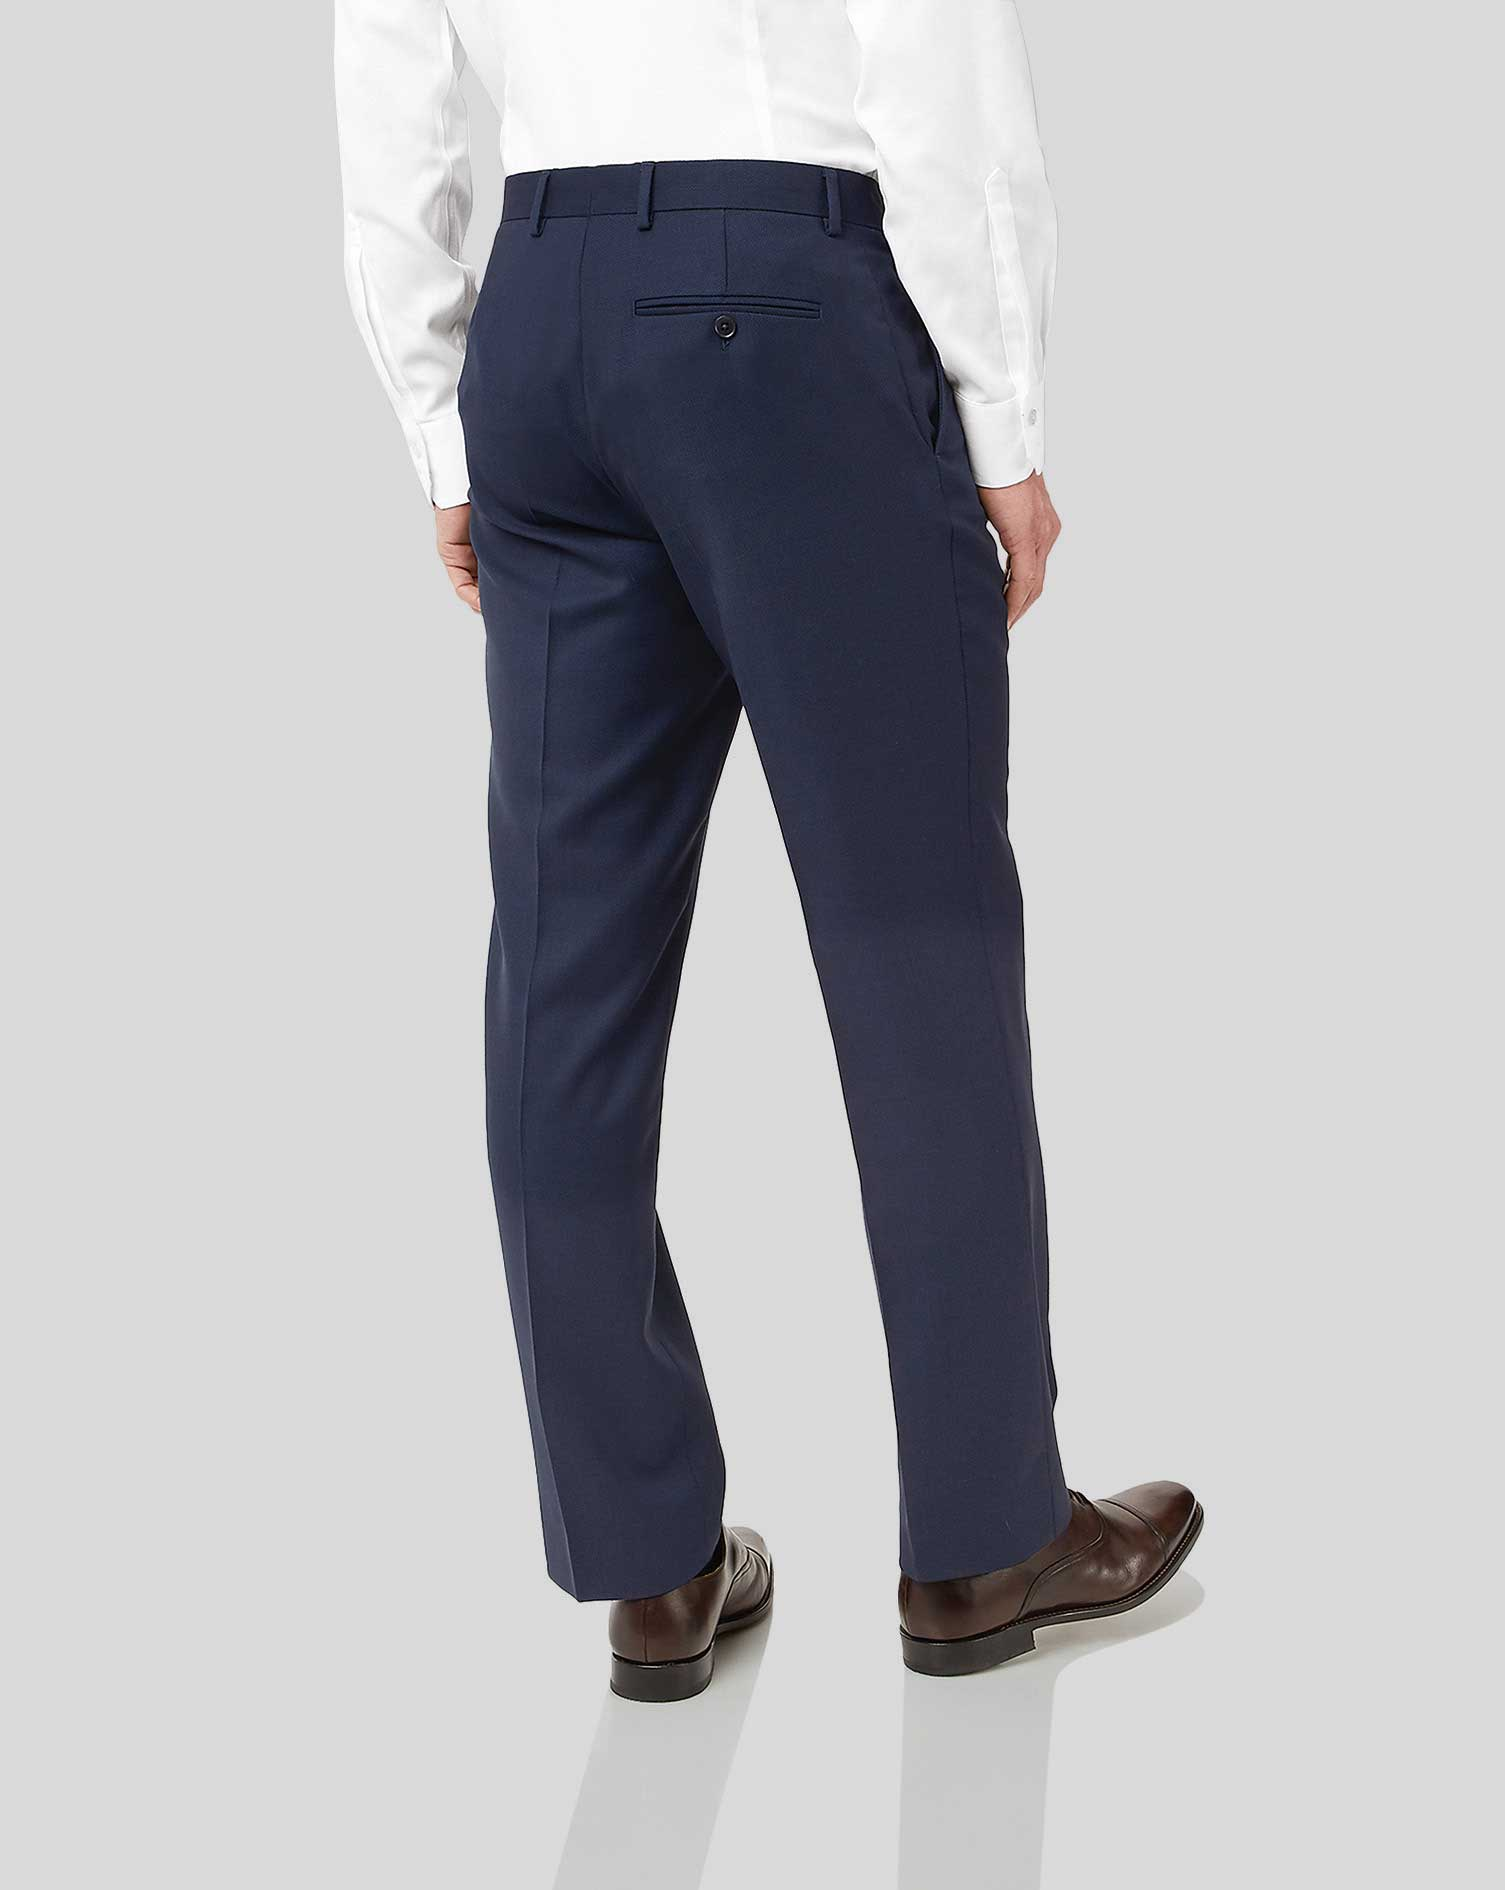 Navy classic fit birdseye travel suit pants